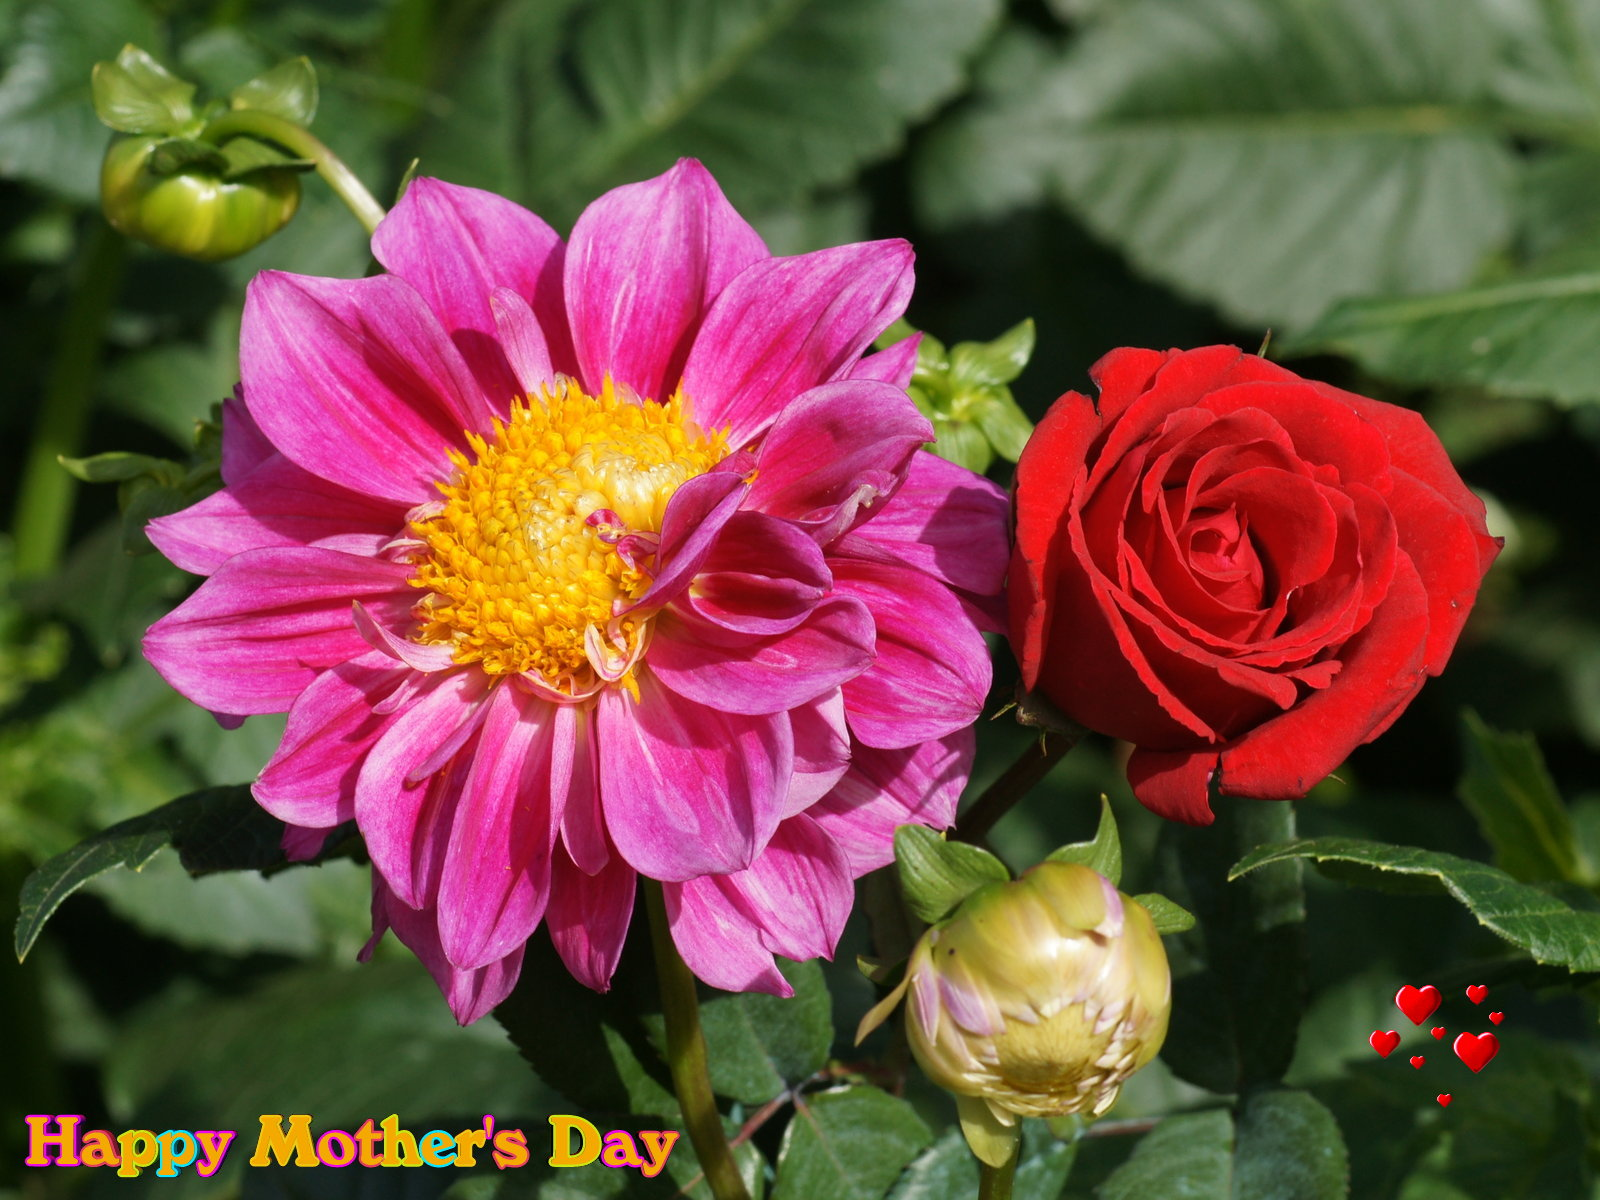 Mothers day wallpaper beautiful flowers beautiful flowers for happy mothers izmirmasajfo